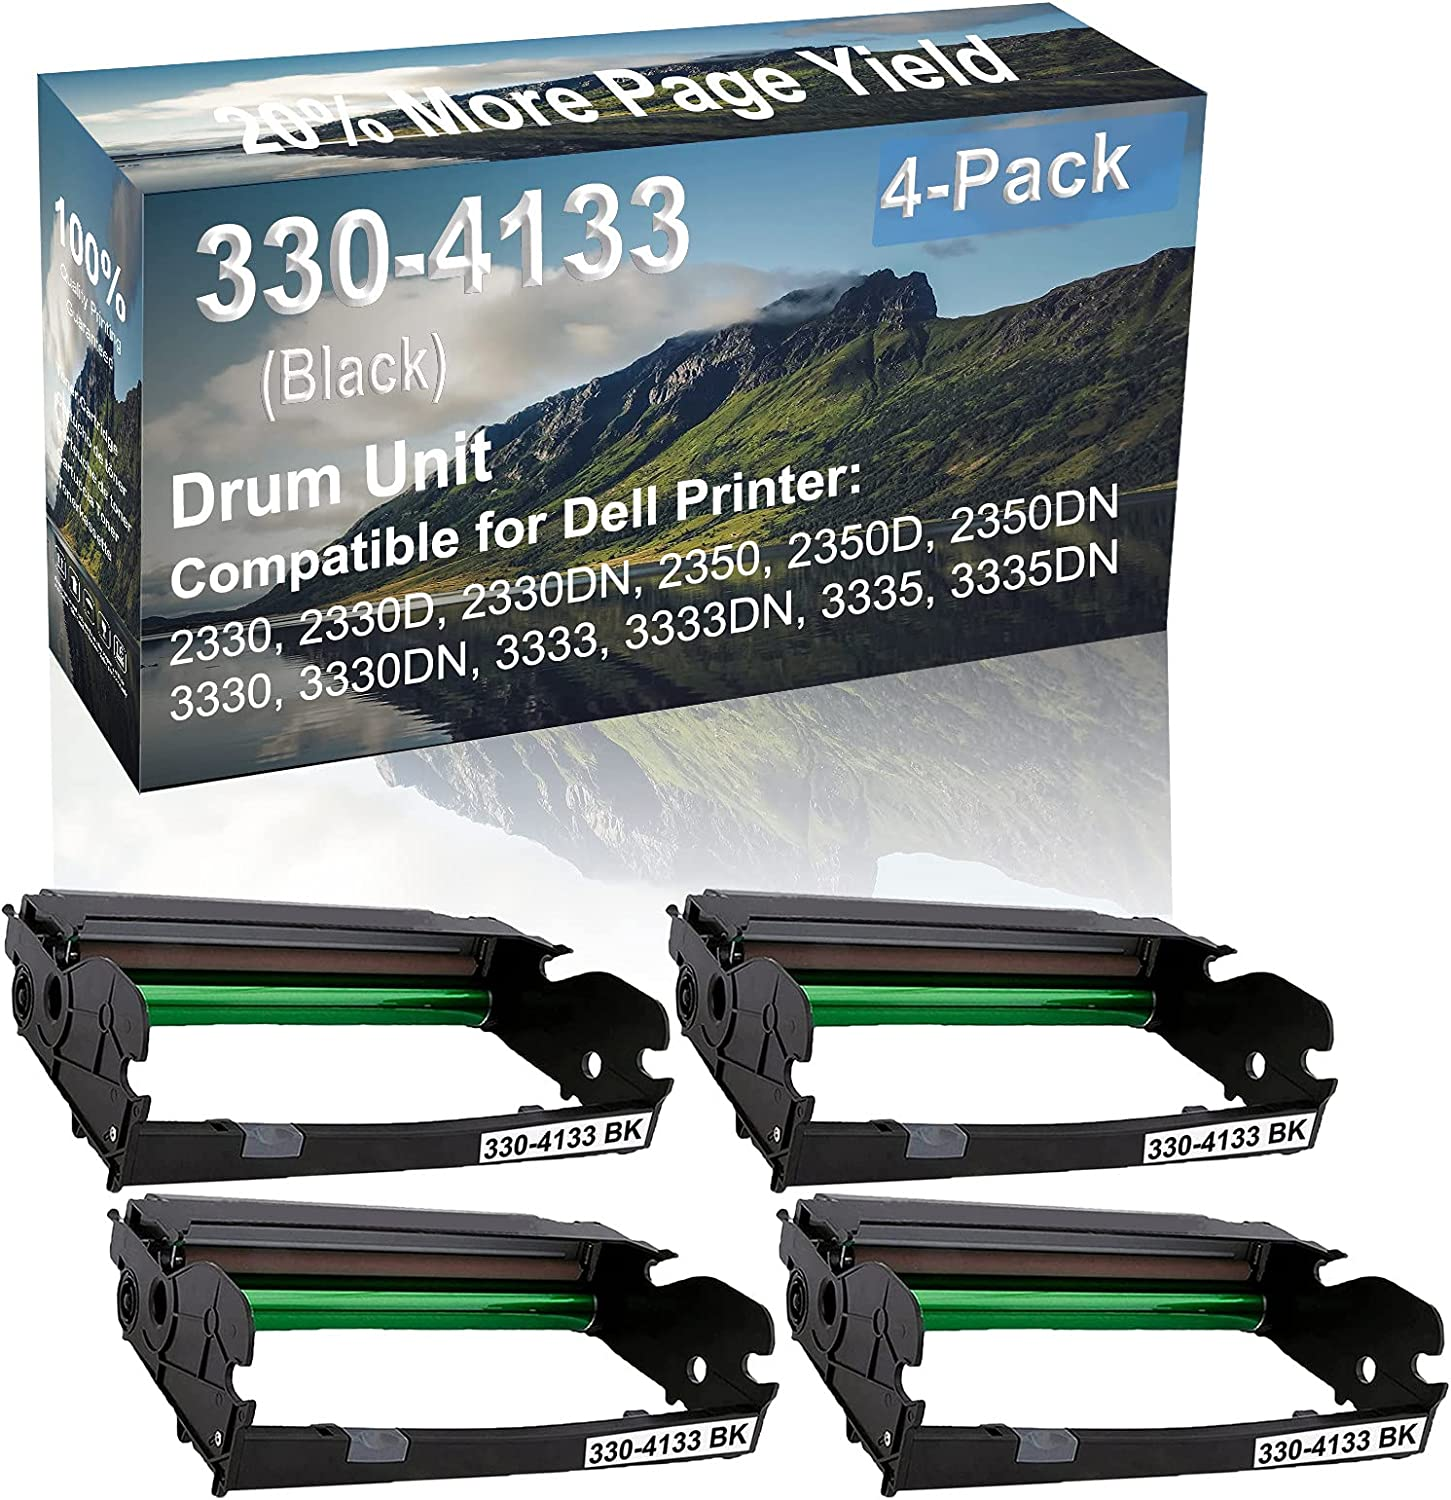 4-Pack Compatible 330-4133 Drum Kit use for Dell 2330, 2330D, 2330DN, 2350 Printer (Black)